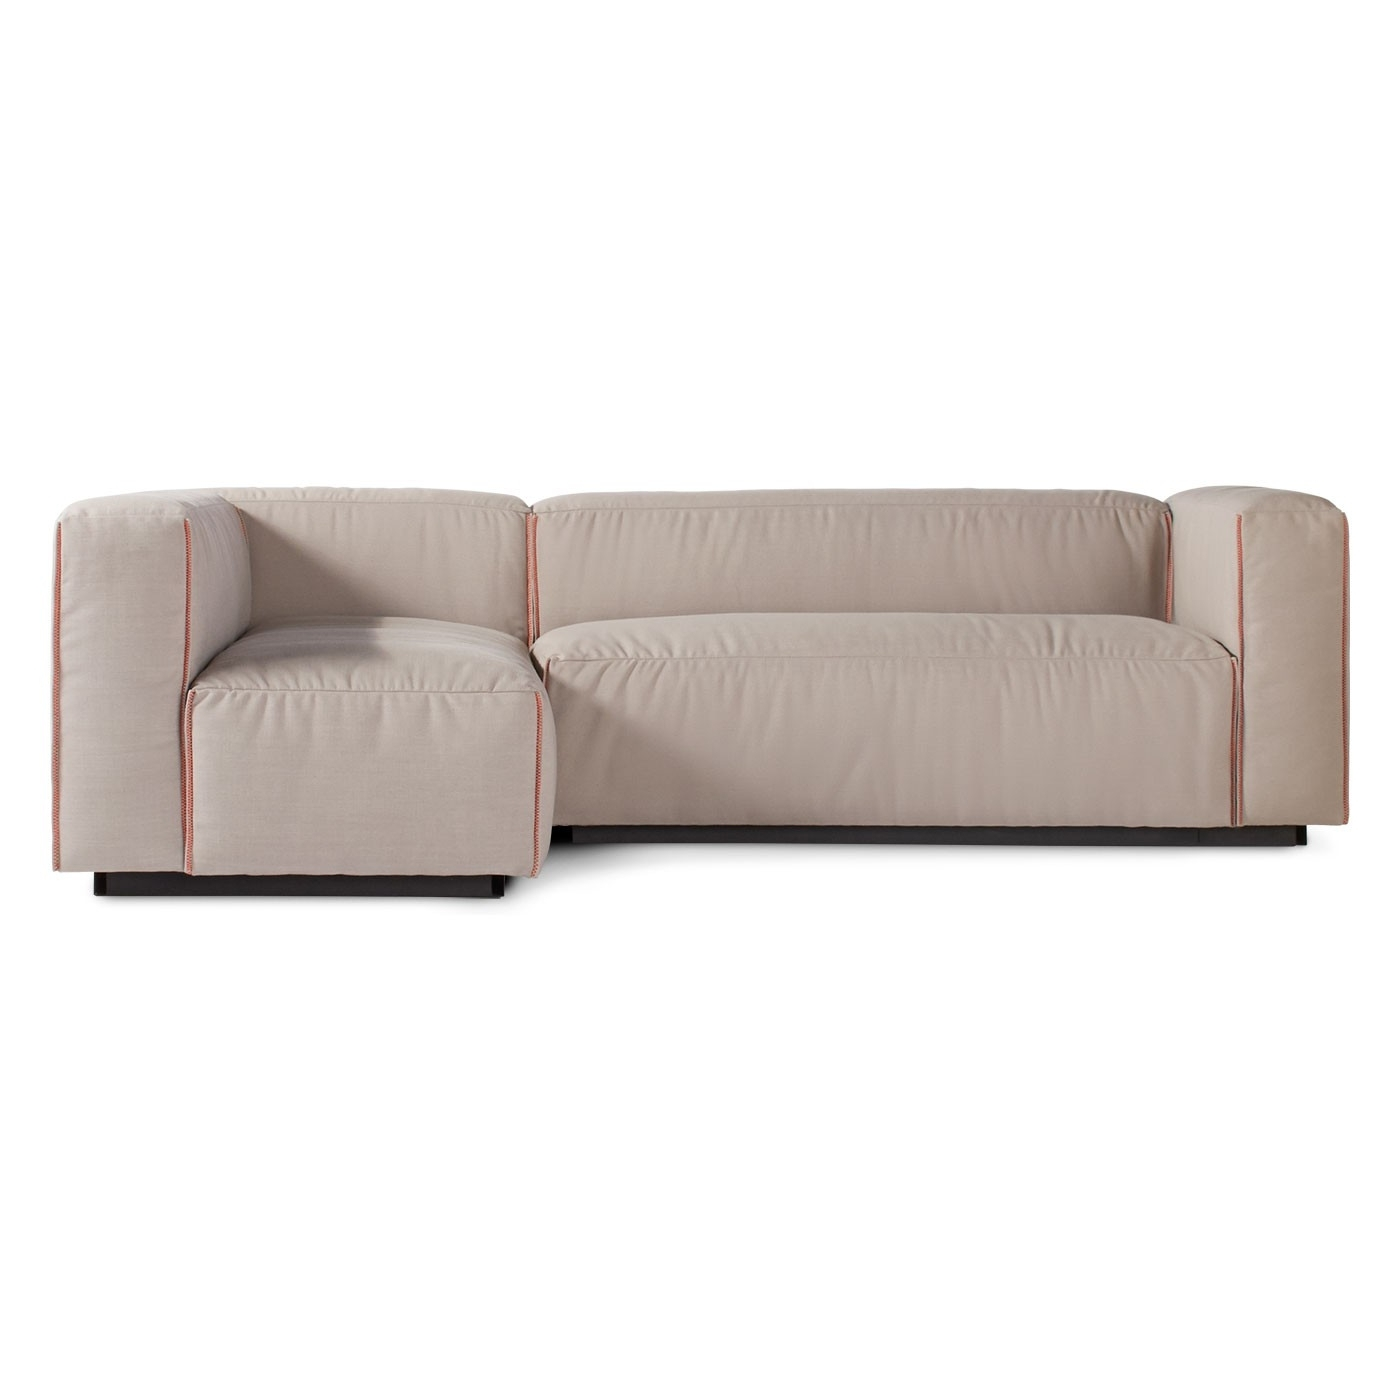 Leons Sectional Sofas Throughout Most Popular Sectional Sofa Design: Elegant Small Modern Sectional Sofa (View 13 of 15)